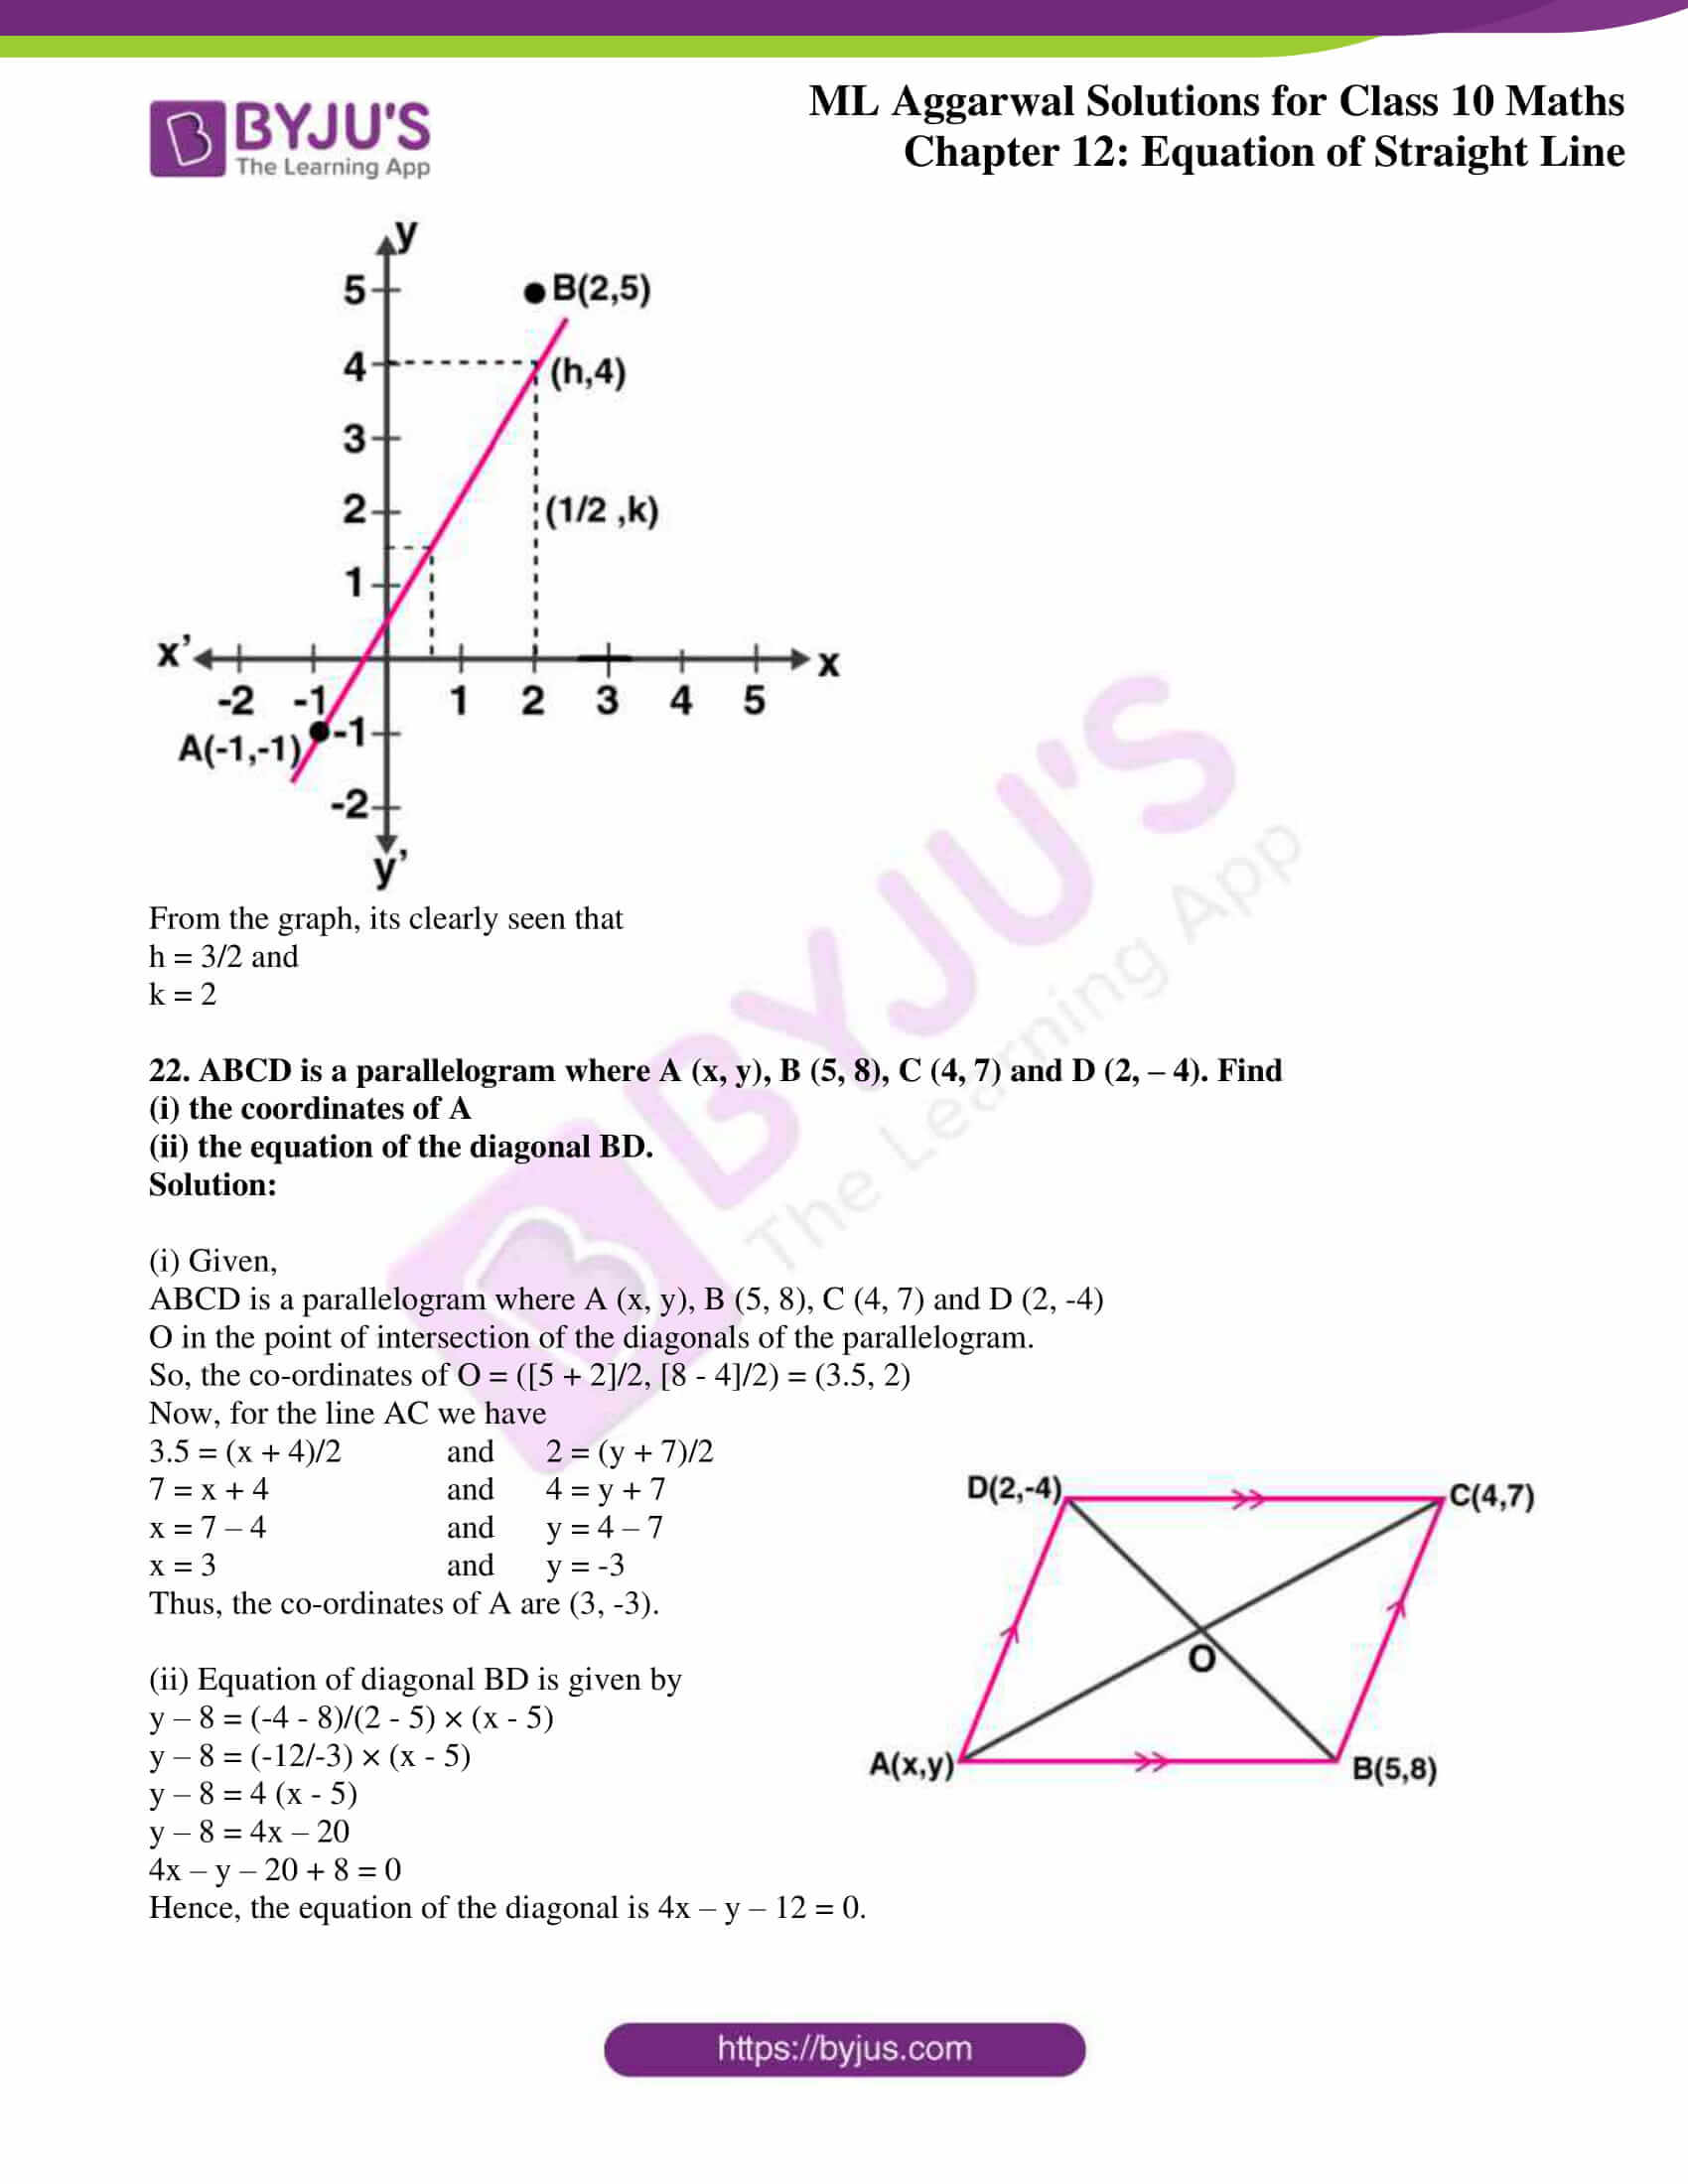 ml aggarwal solutions for class 10 maths chapter 12 09